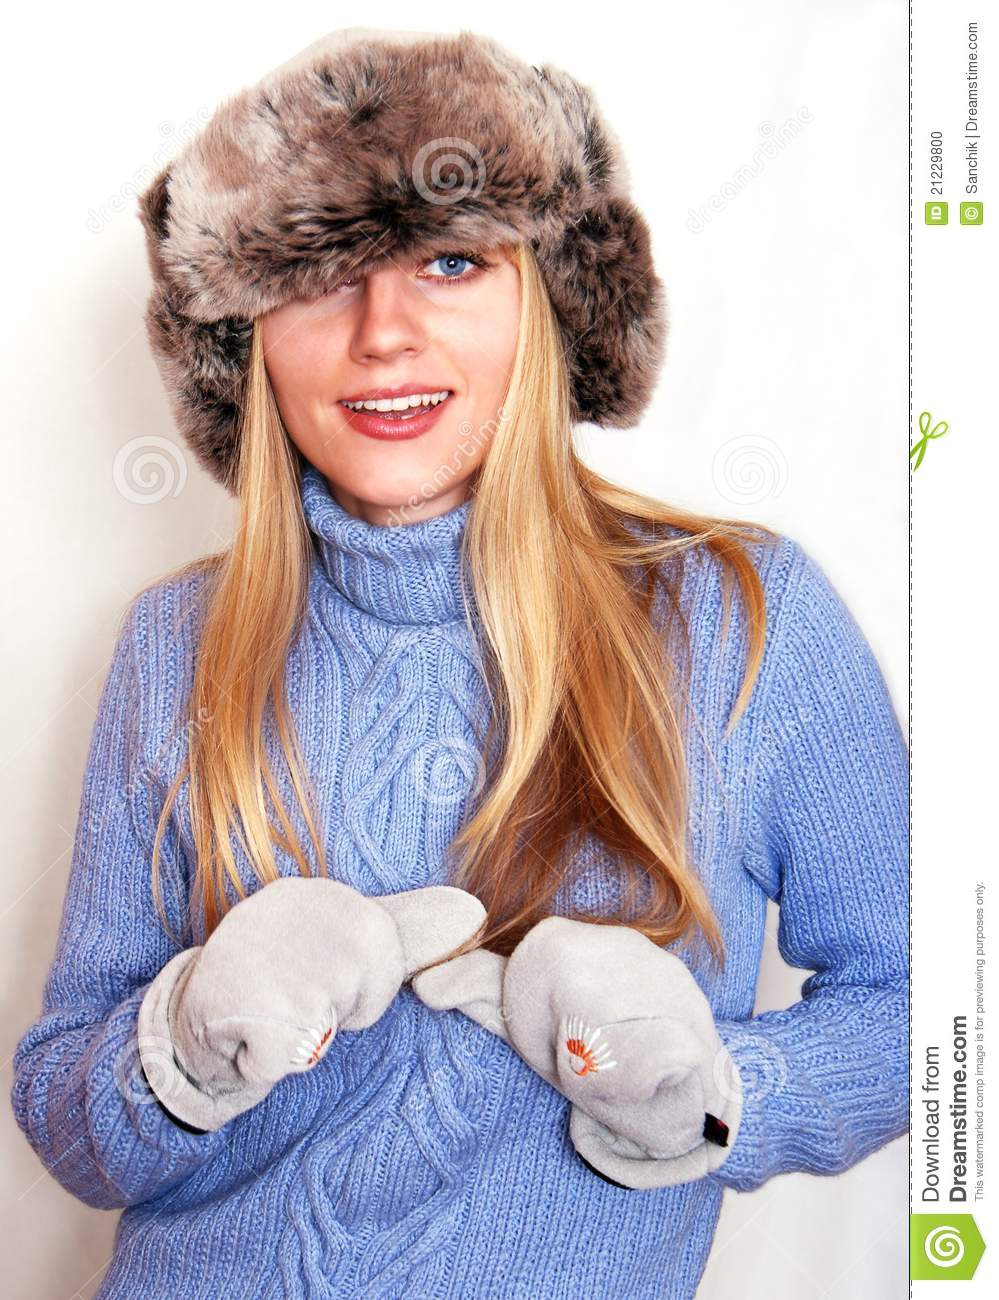 598525b5f Playful Blonde In Russian Hat Stock Photo - Image of flaps, girl ...